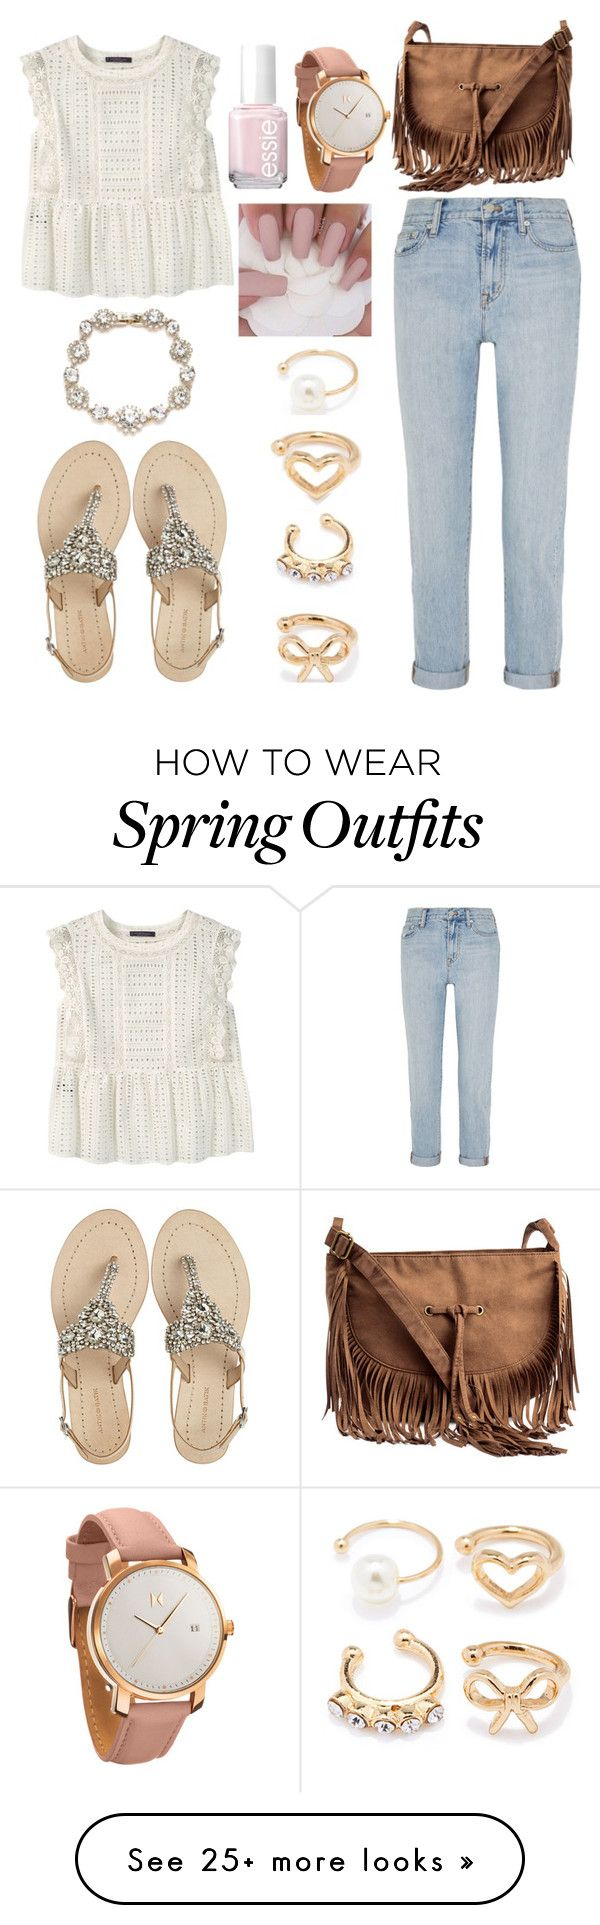 """girly outfit"" by juliyagrig on Polyvore featuring Violeta by Mango, Madewell, Antik Batik, Forever 21, Marchesa, H&M, Essie and MVMT"